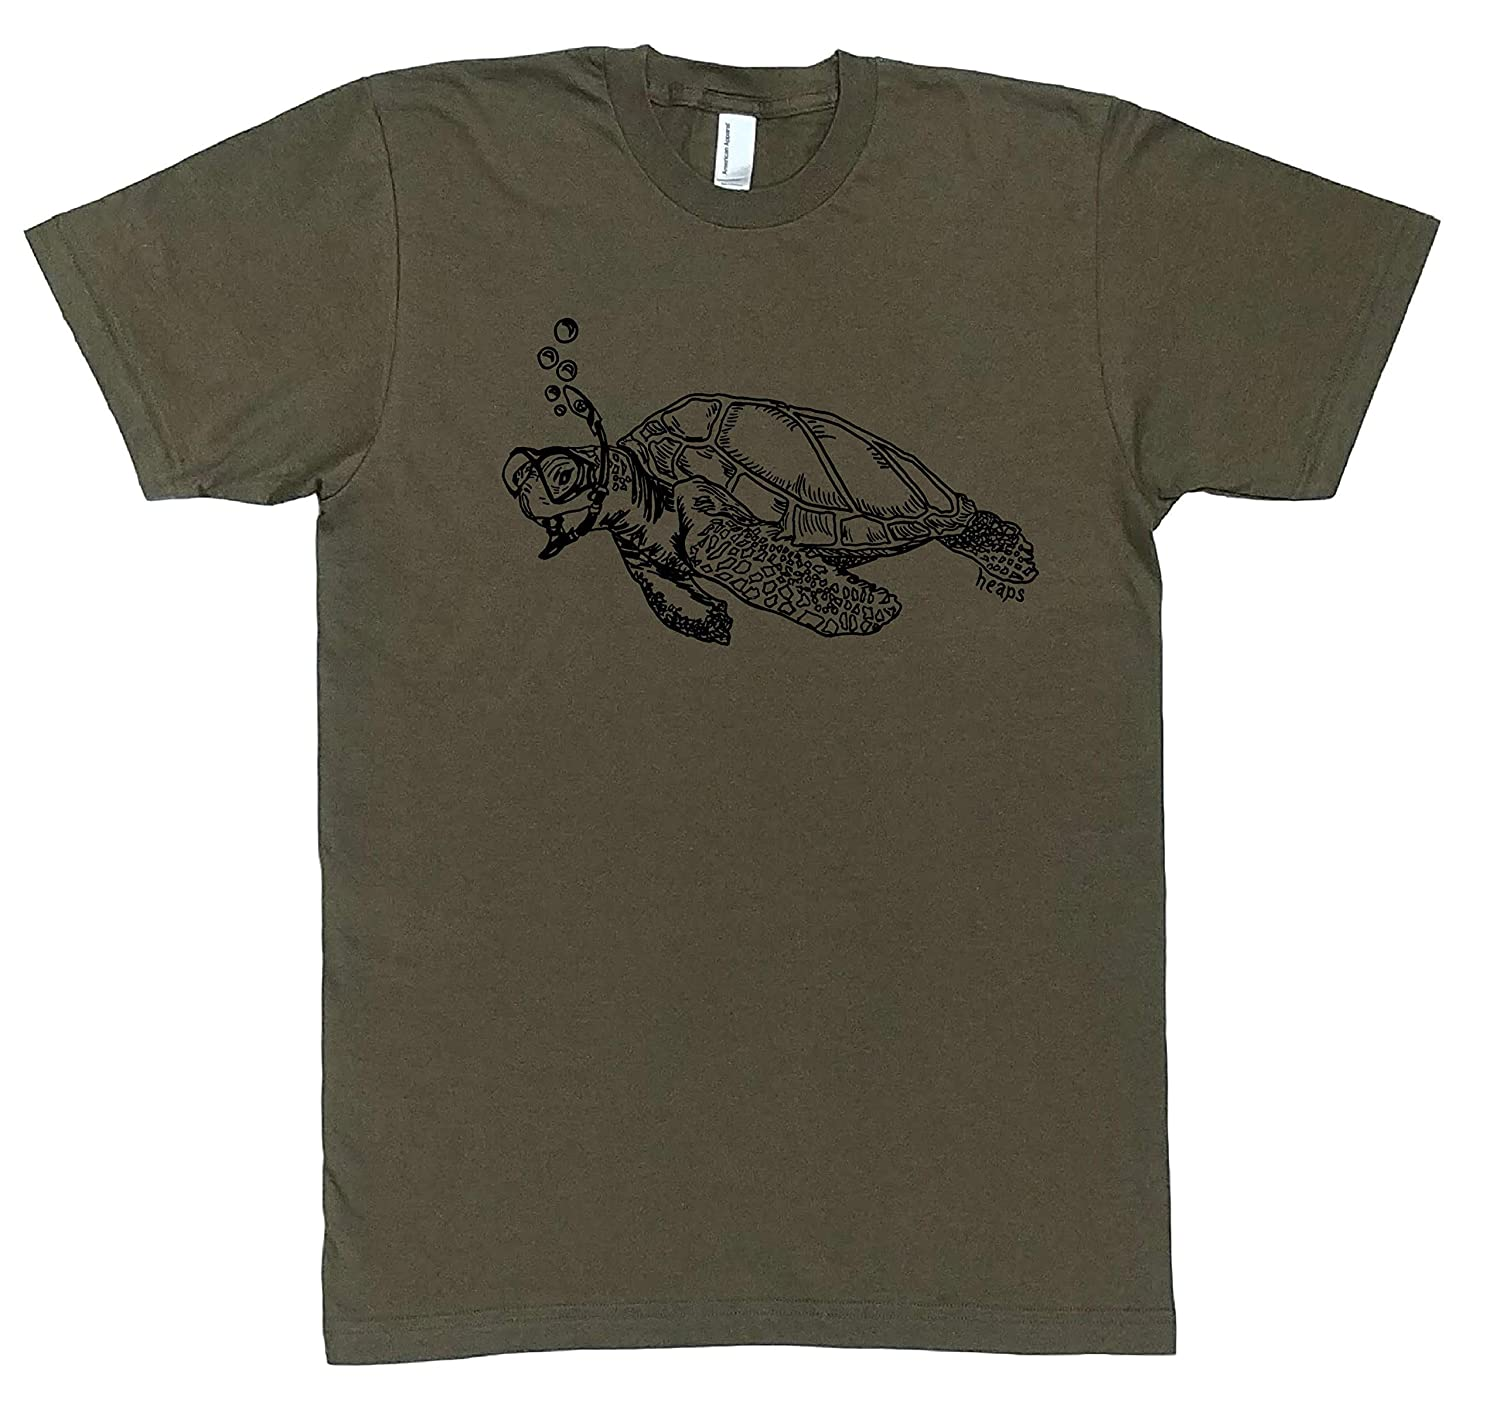 Max Genuine Free Shipping 62% OFF Mens T Shirt Snorkeling Turtle Printed S XL Graphic L M